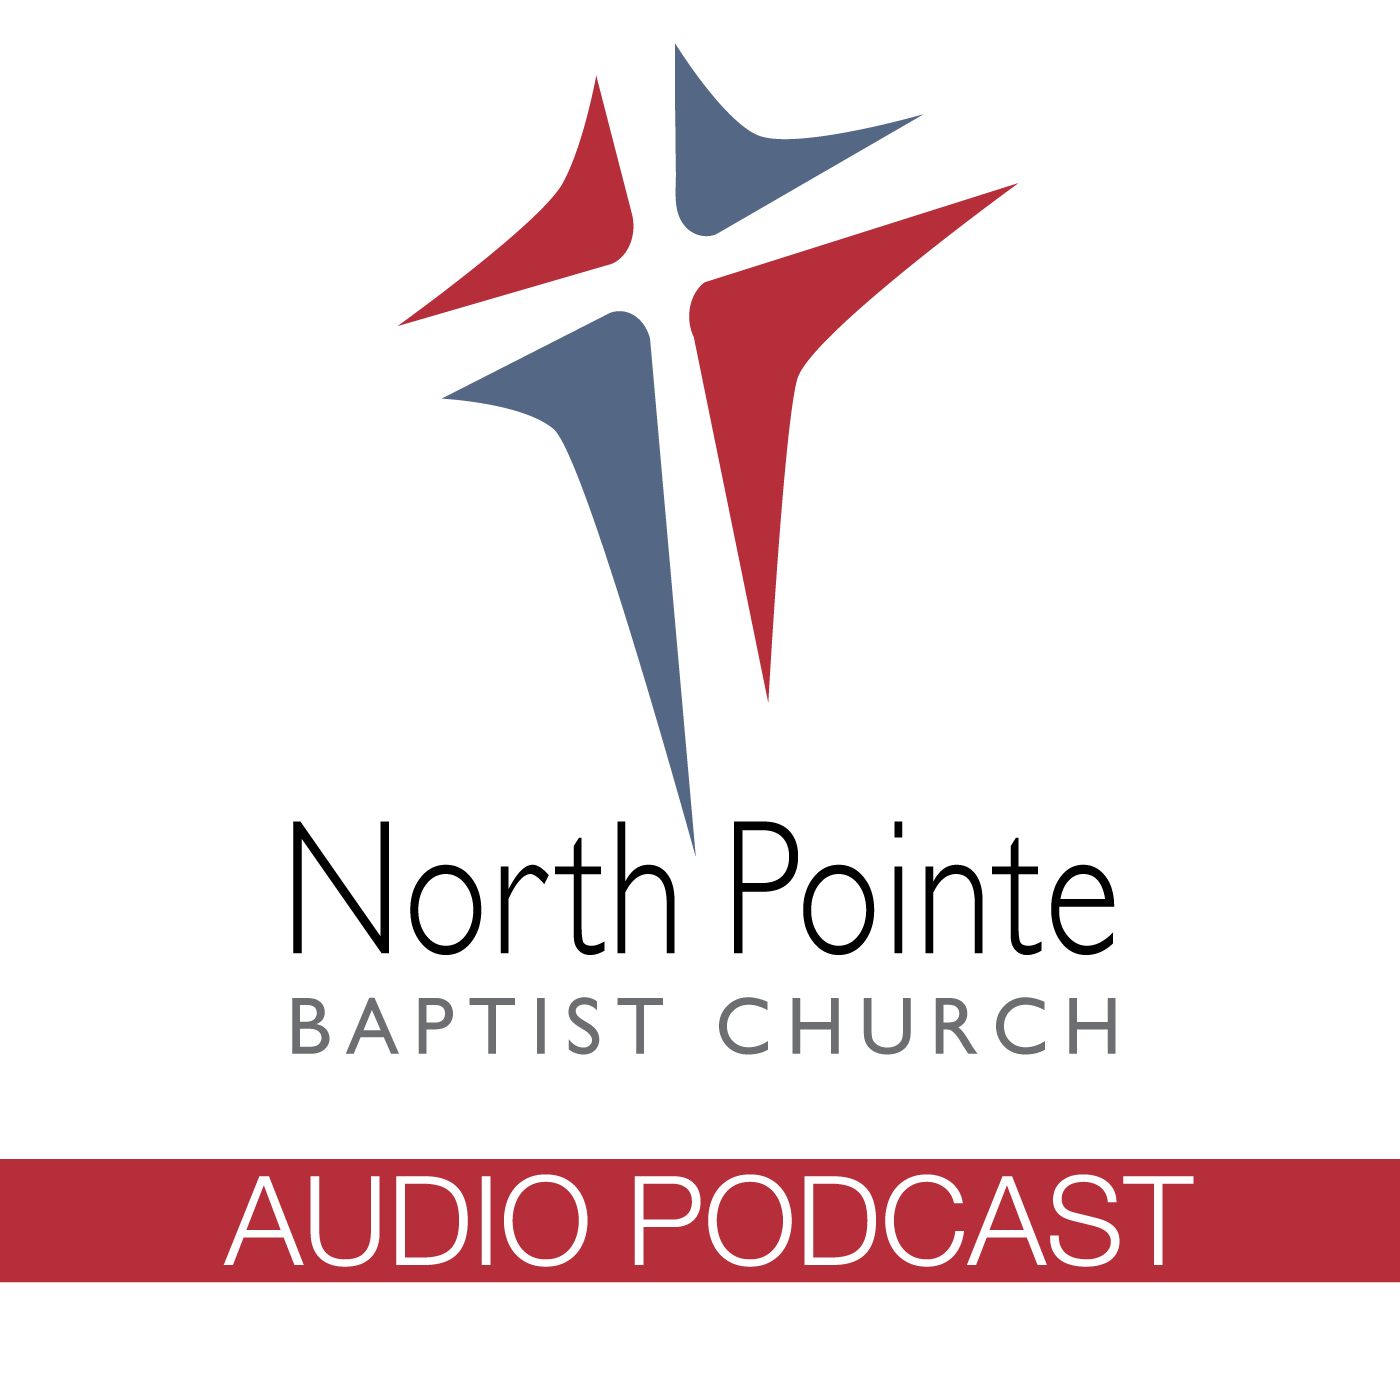 Podcast - North Pointe Baptist Church